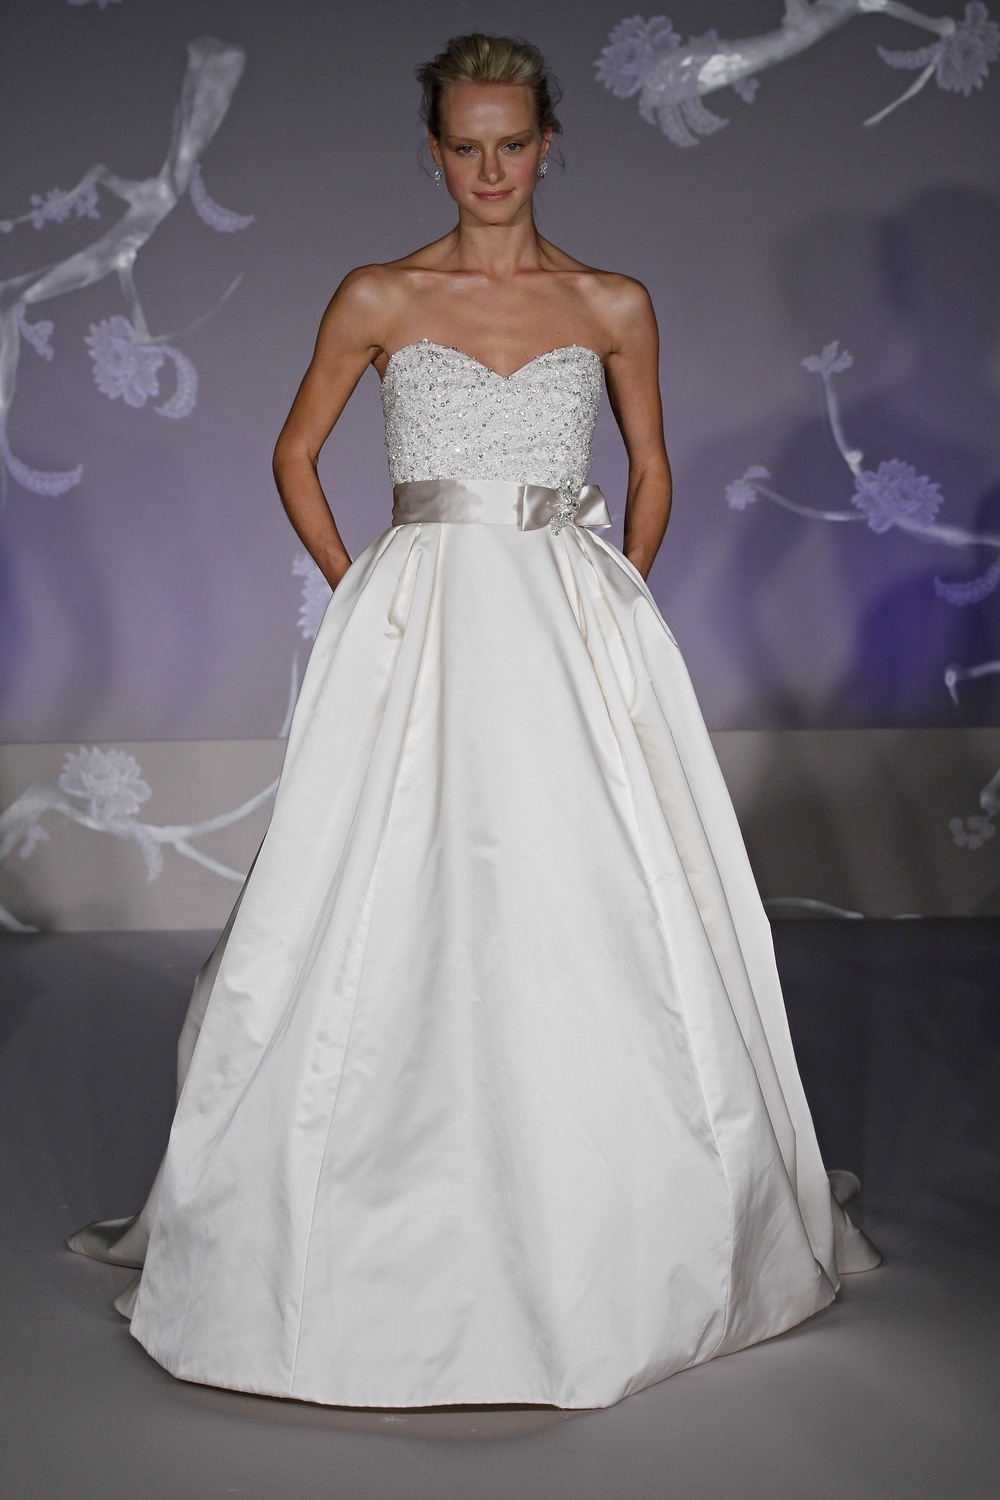 Classic ivory ballgown wedding dress with sweetheart neckline, pockets, and sash